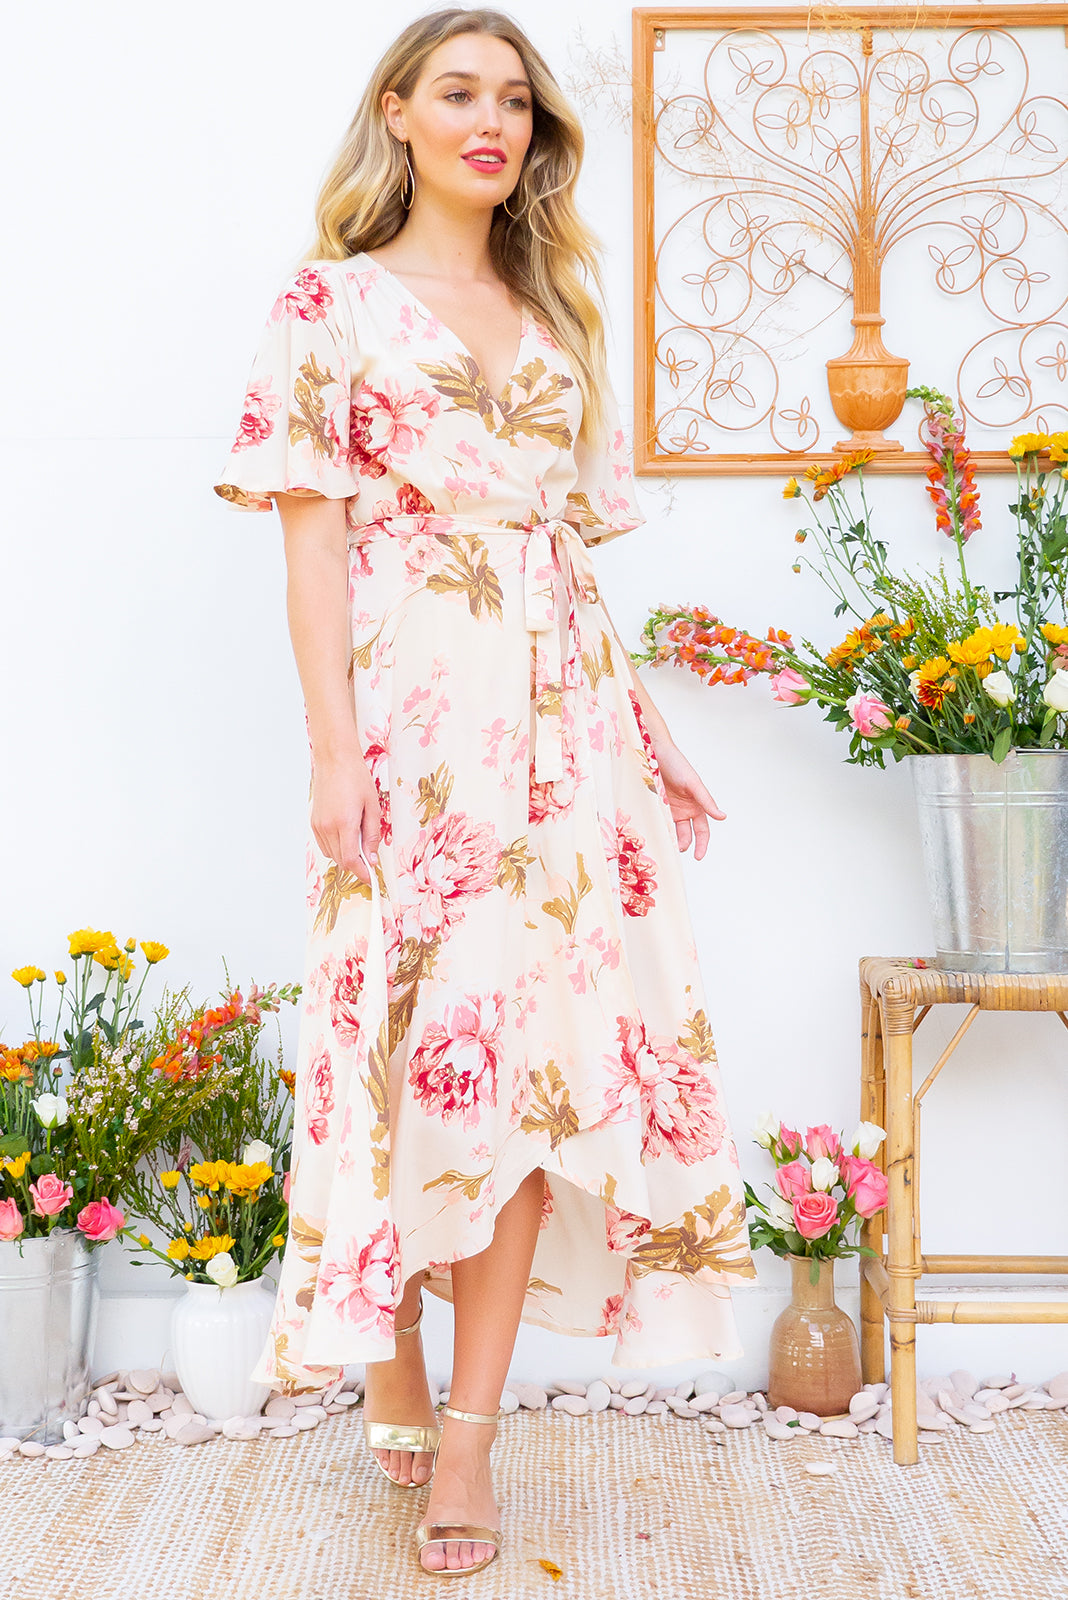 Petal Biscotti Blooms Maxi Wrap Dress features a flutter sleeve, adjustable wrap around waist and a dipped hemline in a soft woven 100% rayon fabric with a romantic bohemian floral print in warm cream and pink tones